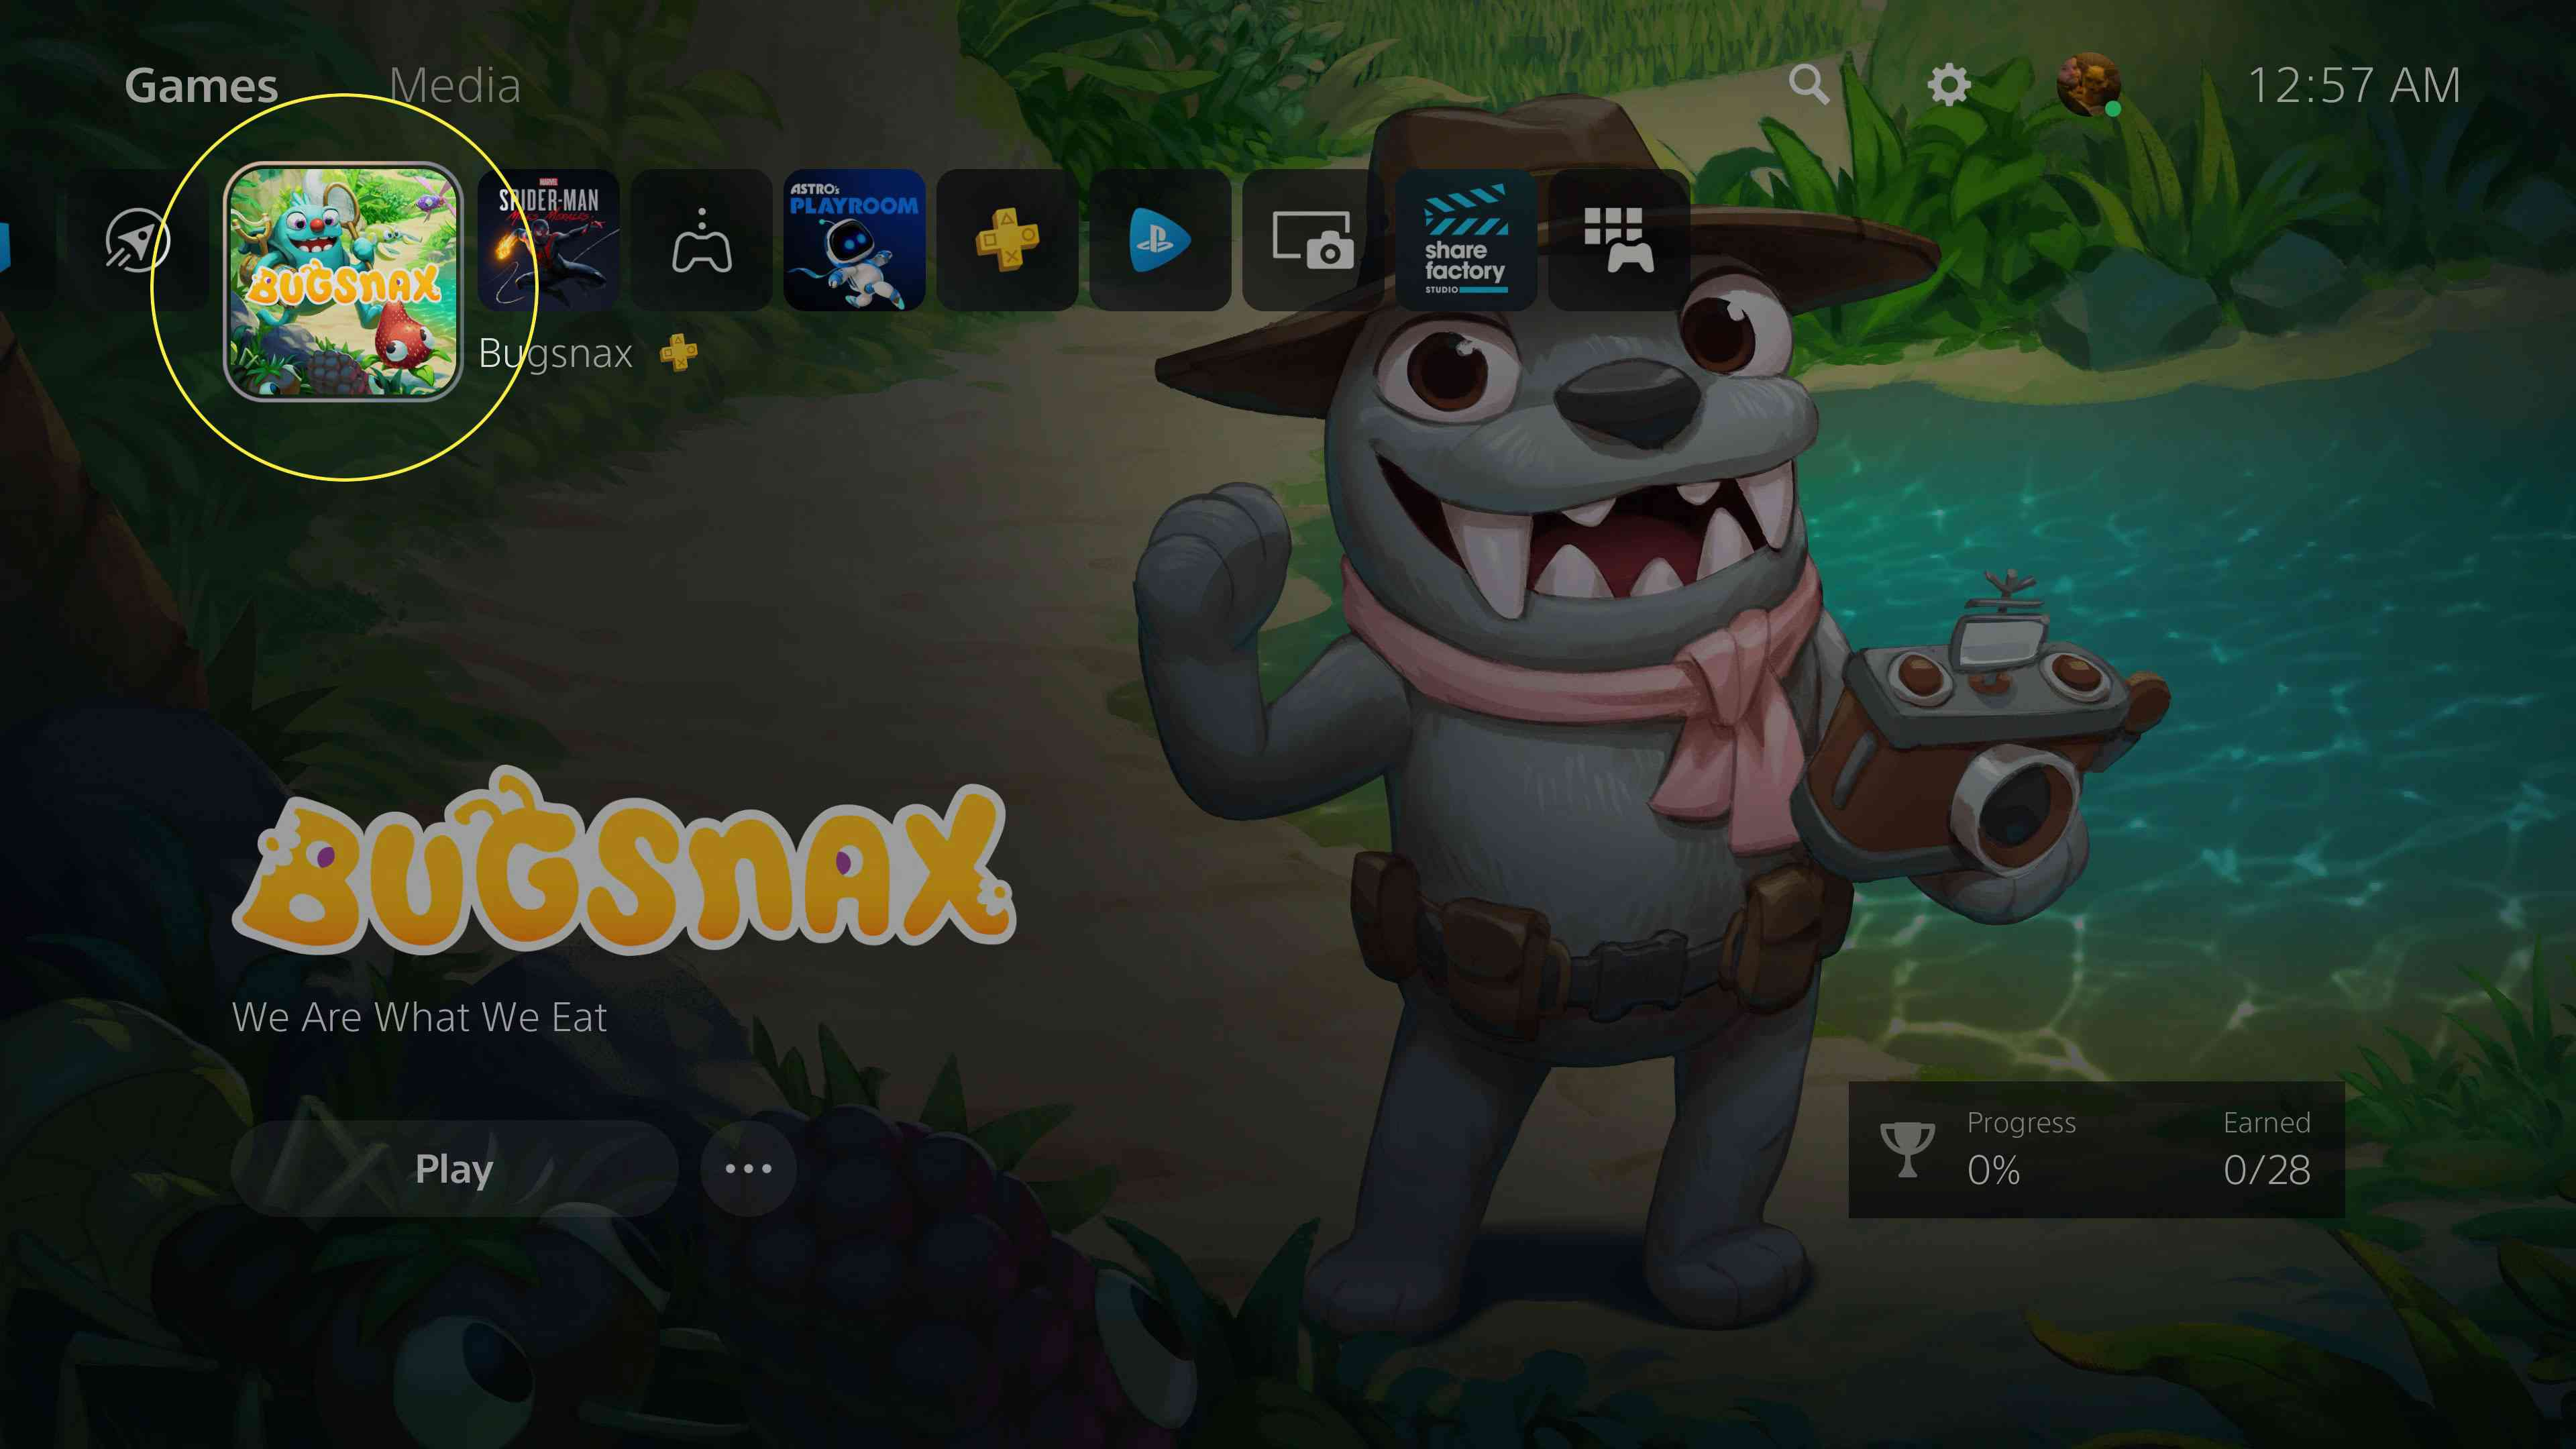 A game on the PS5 home screen